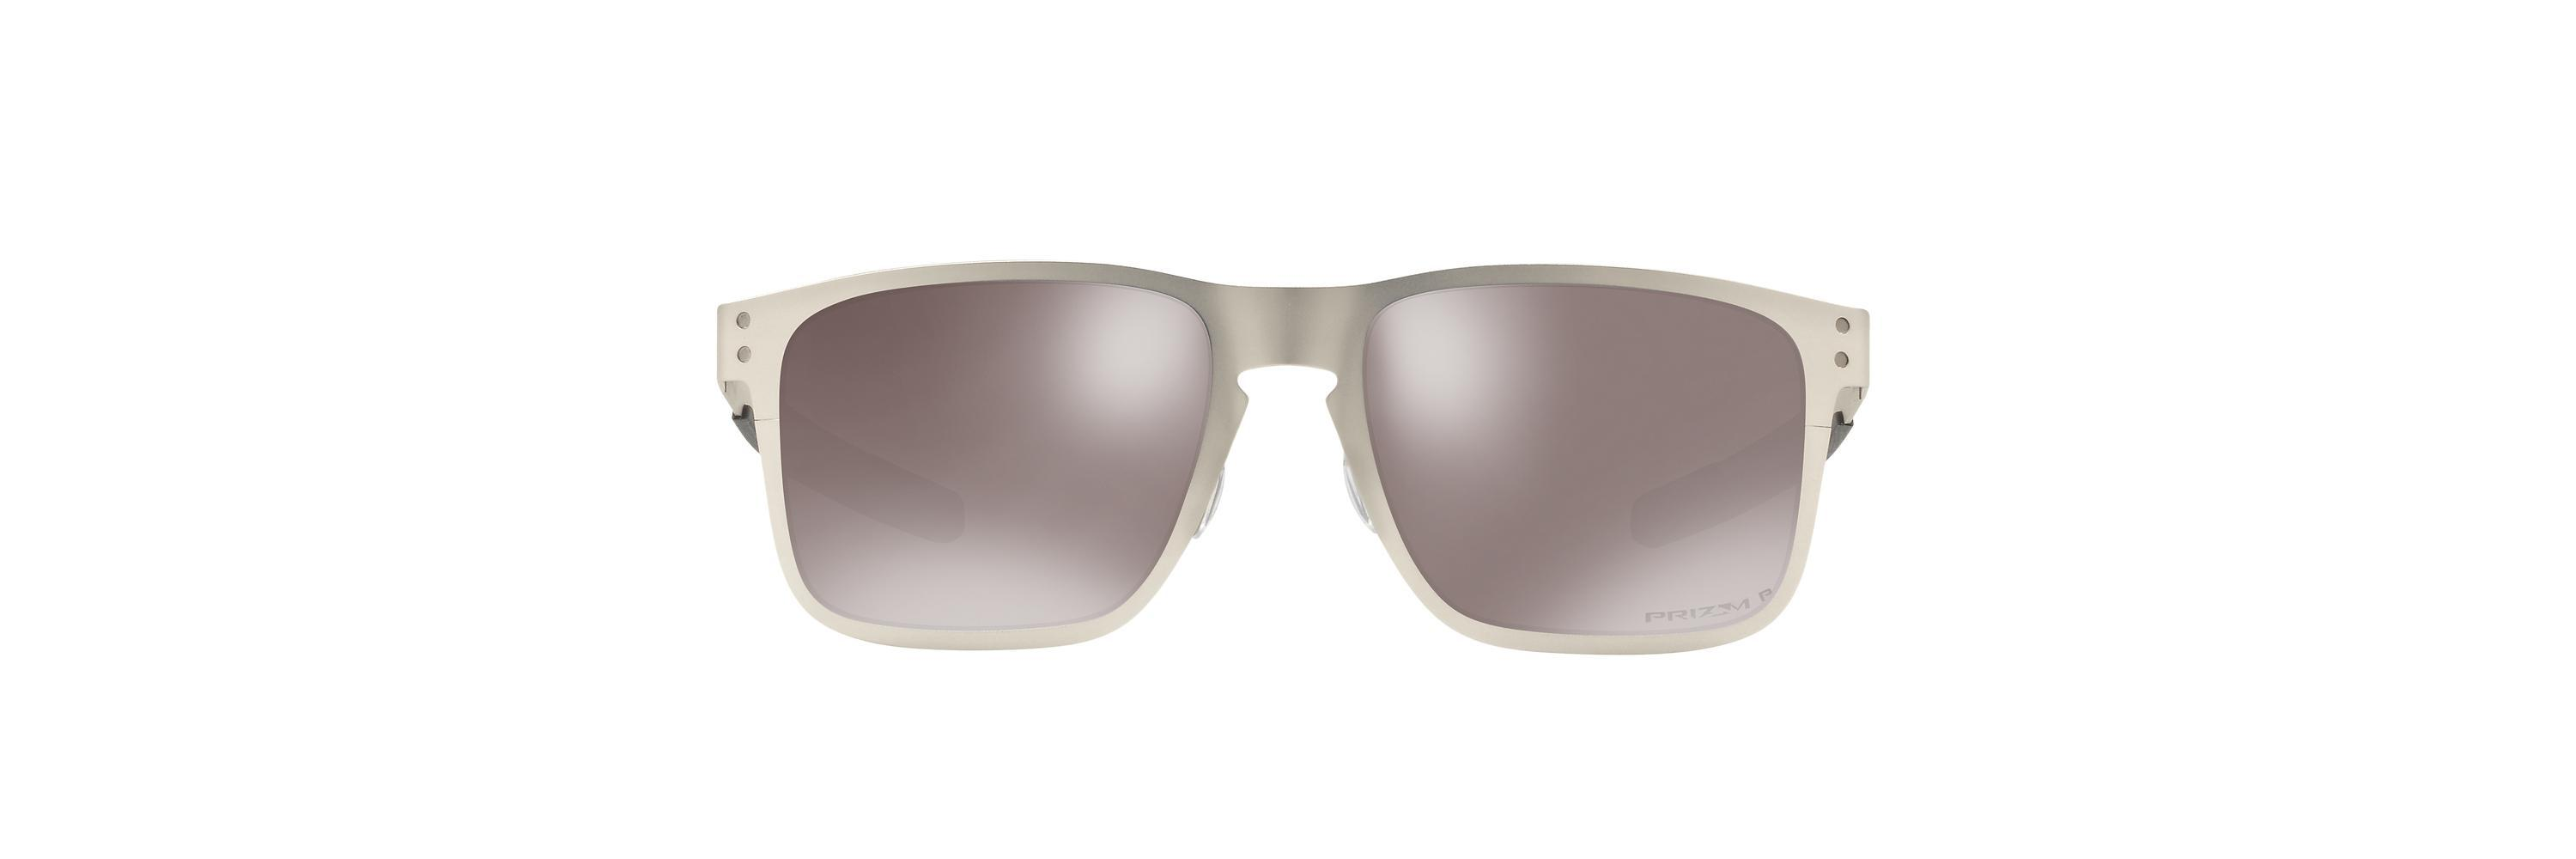 ecb99cb343 Oakley Oo4123 55 Holbrook Metal Prizm Black Only At Sunglass Hut in ...